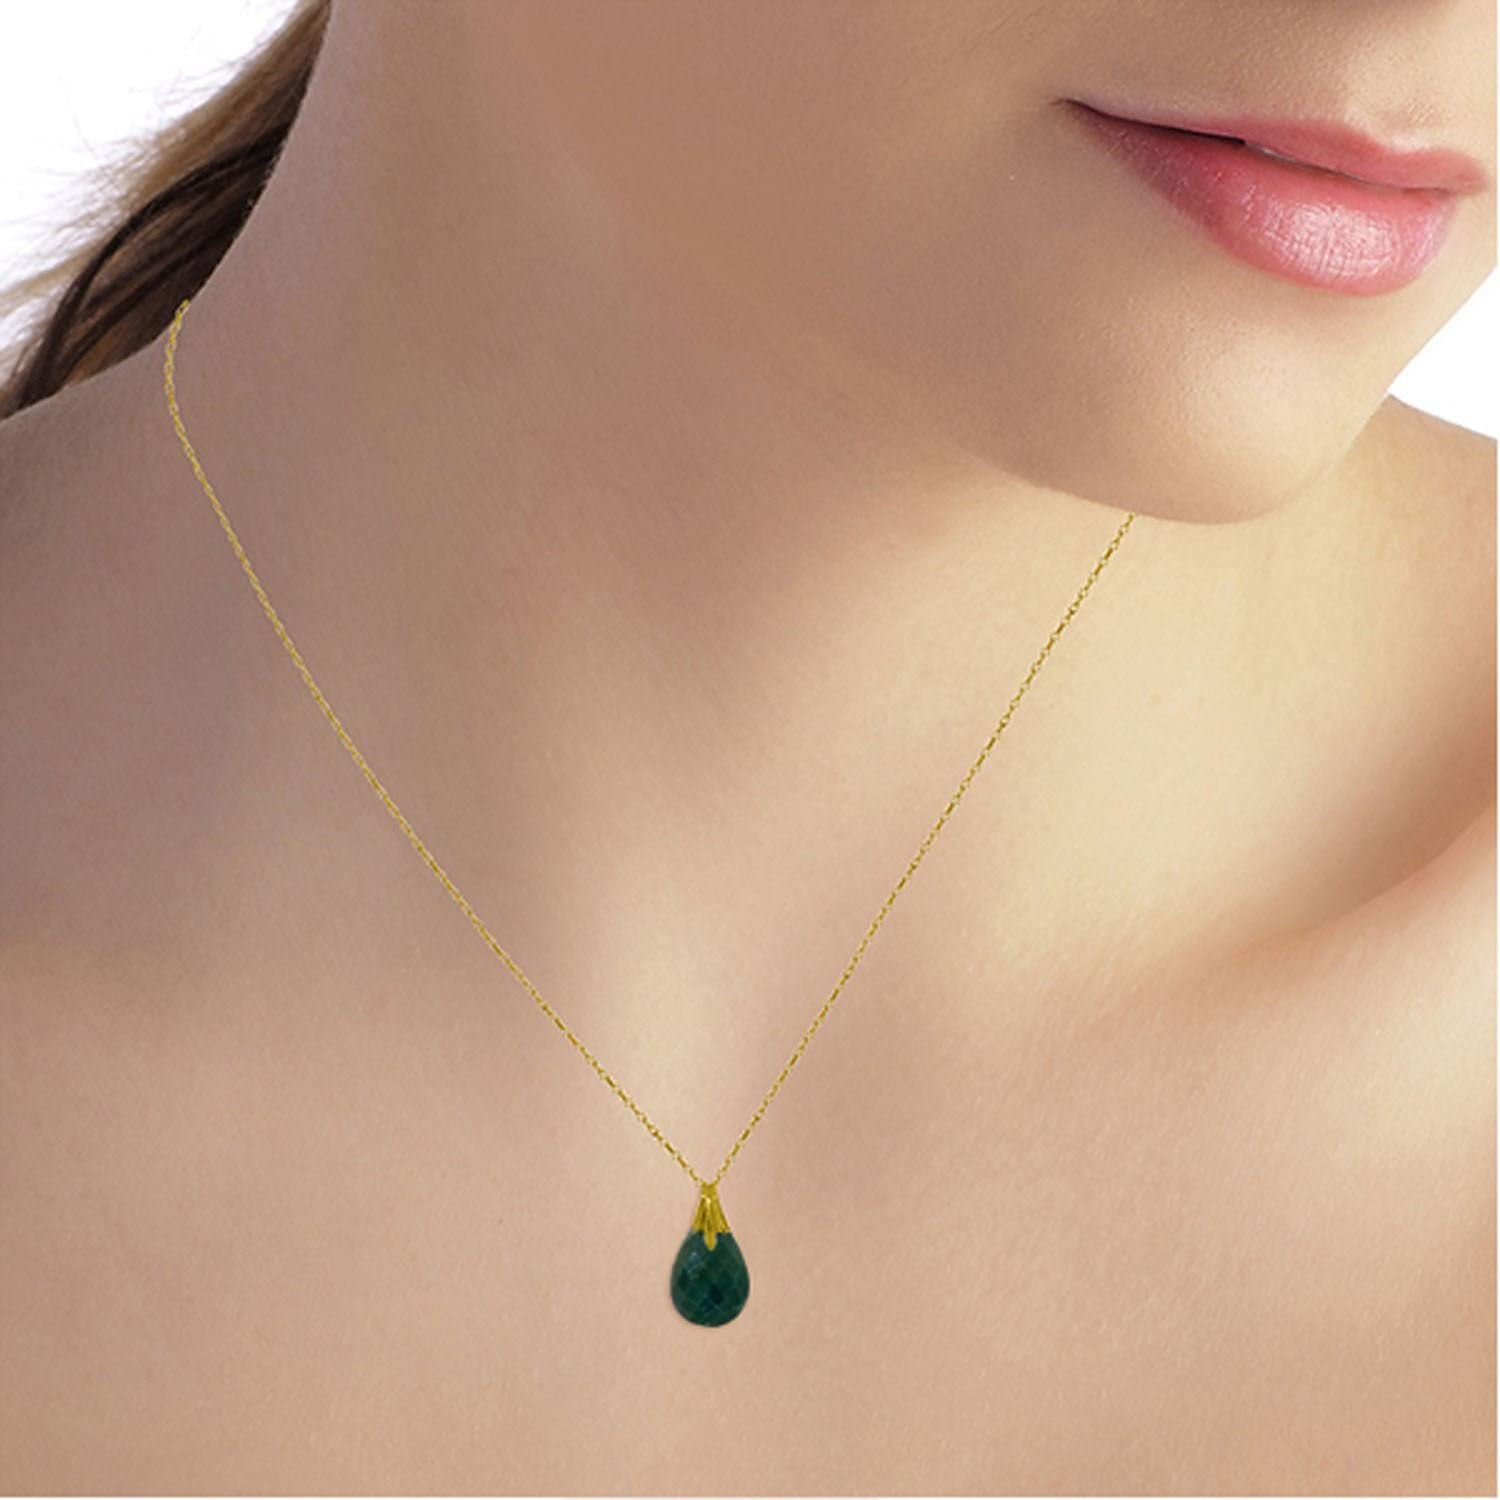 ALARRI 14K Solid Gold Necklace w// Natural Diamondyed Green Sapphire with 18 Inch Chain Length